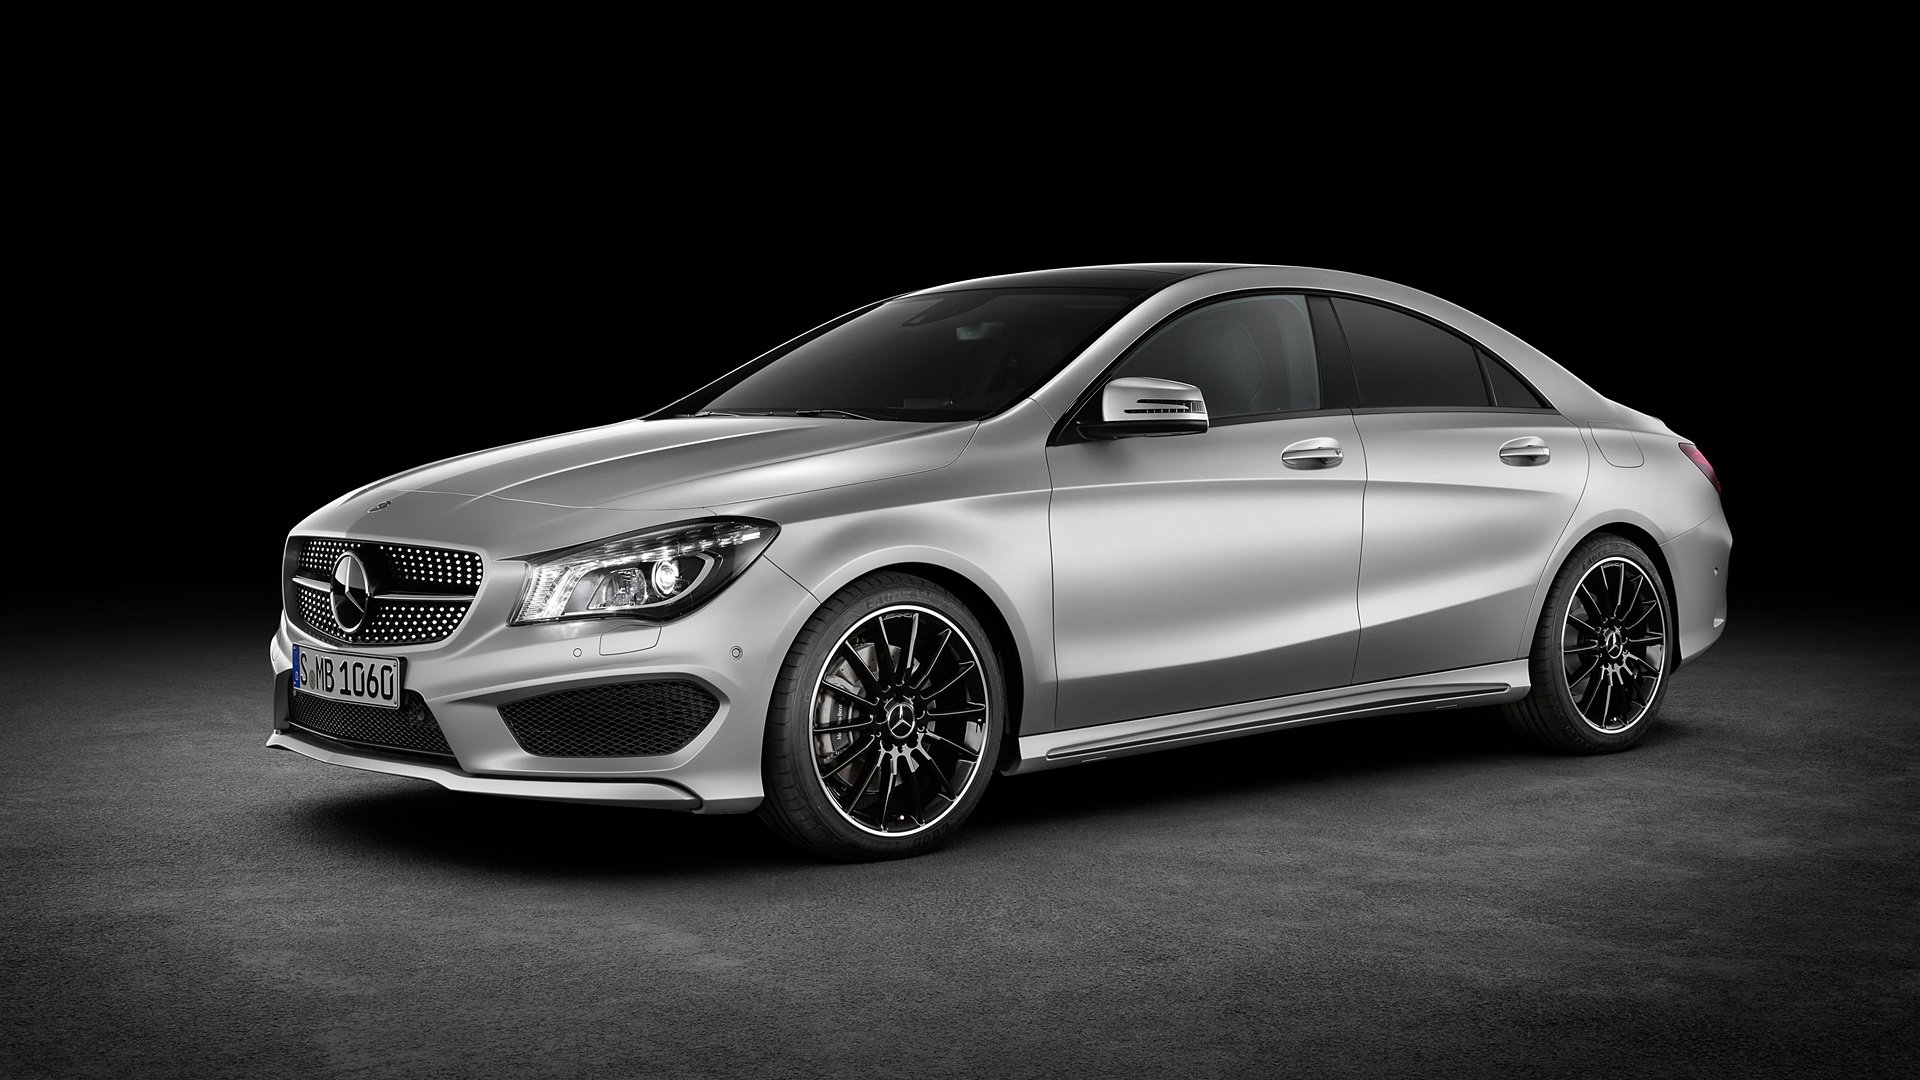 2014 Mercedes Benz CLA CLass Wallpapers HD Images   WSupercars 1920x1080